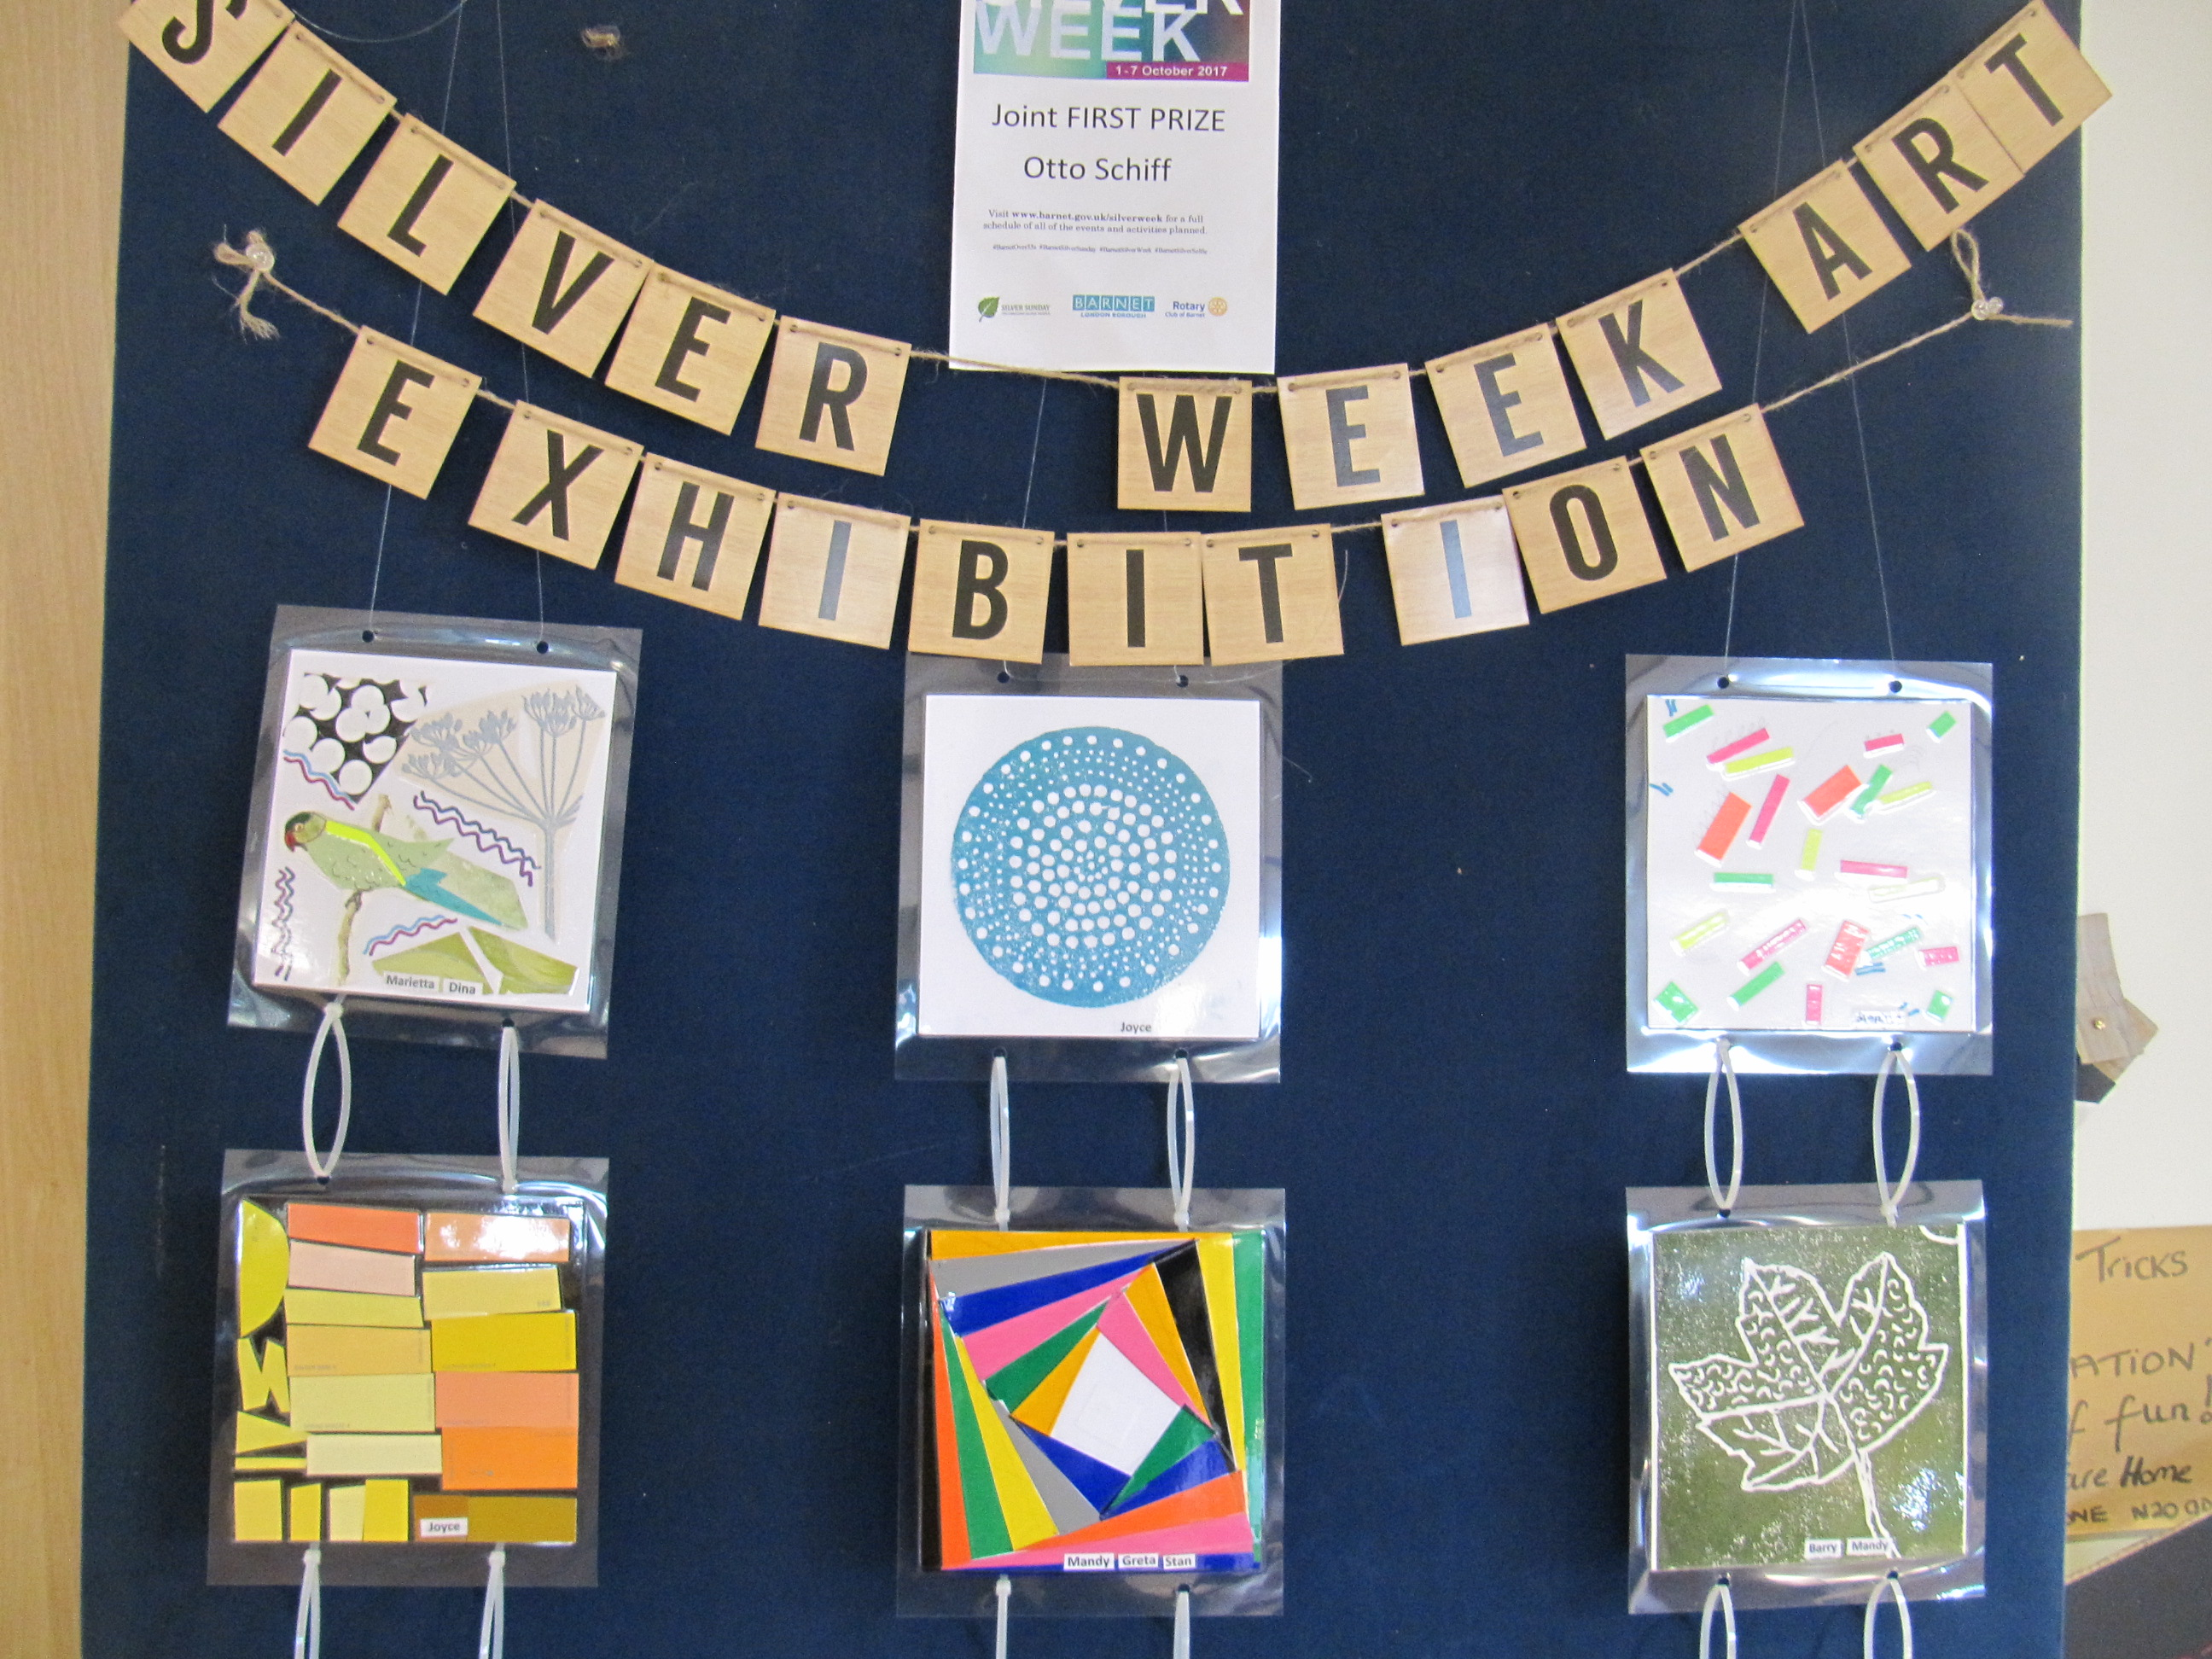 Its official! Silver Week Art Exhibition!